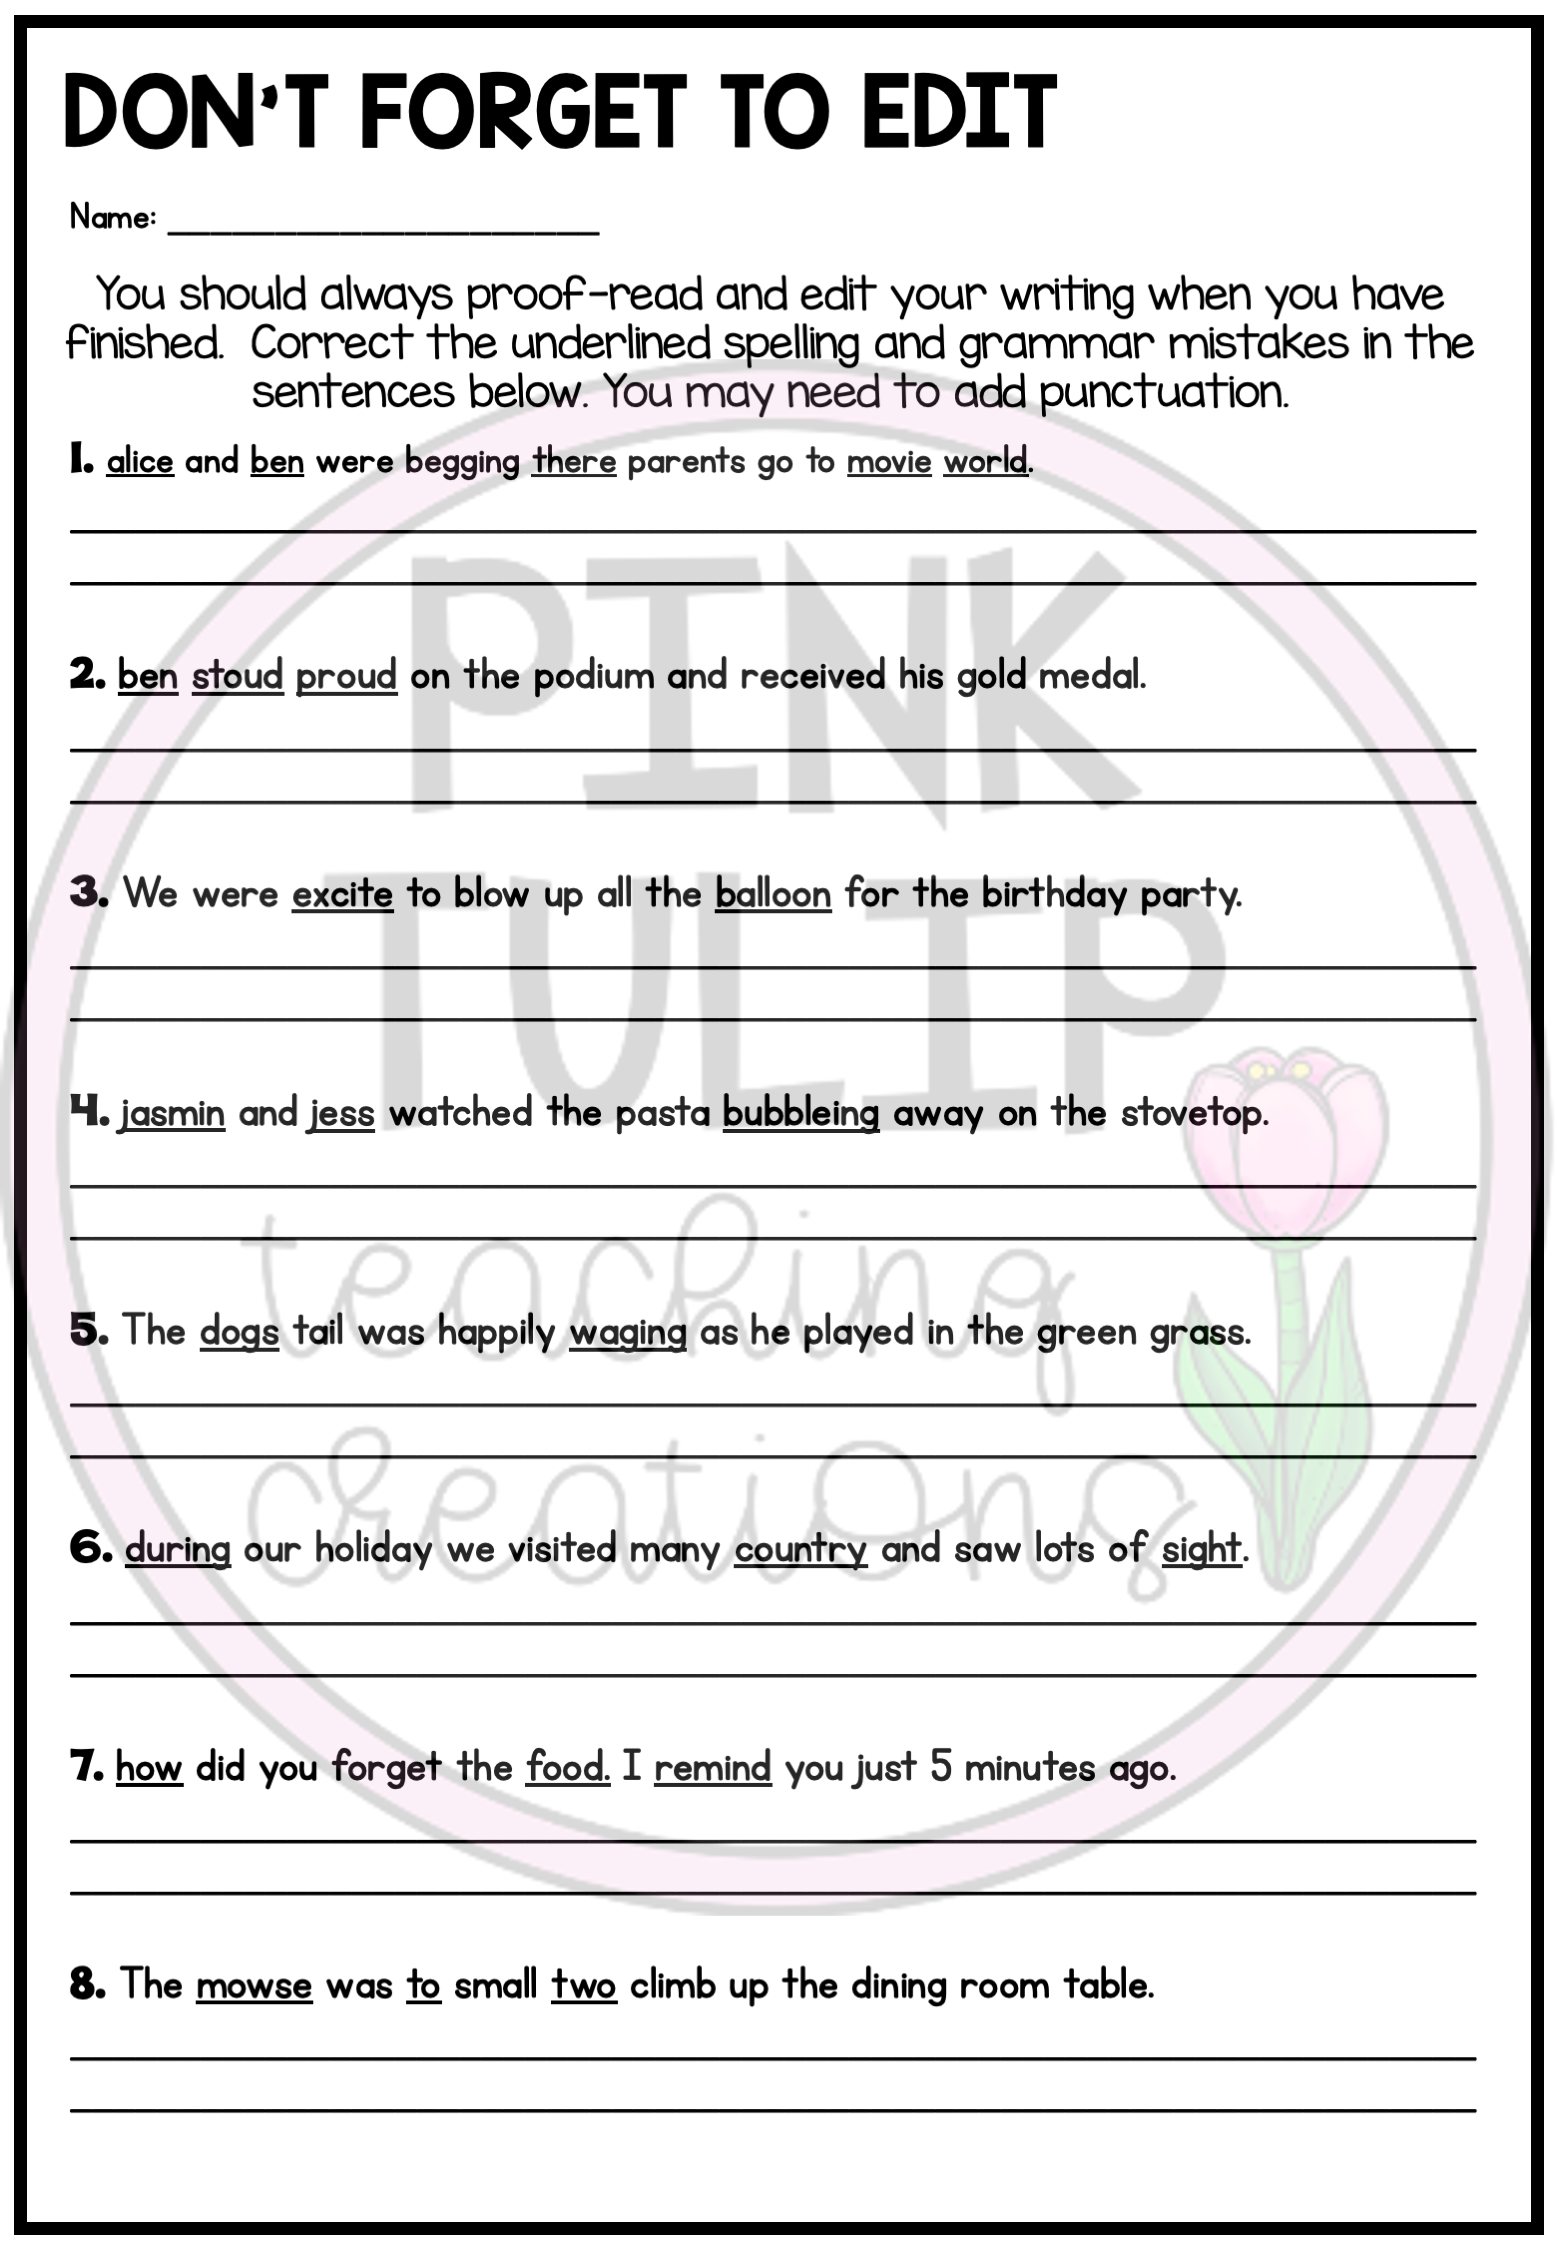 hight resolution of Proofreading And Editing Worksheets Printable   Printable Worksheets and  Activities for Teachers